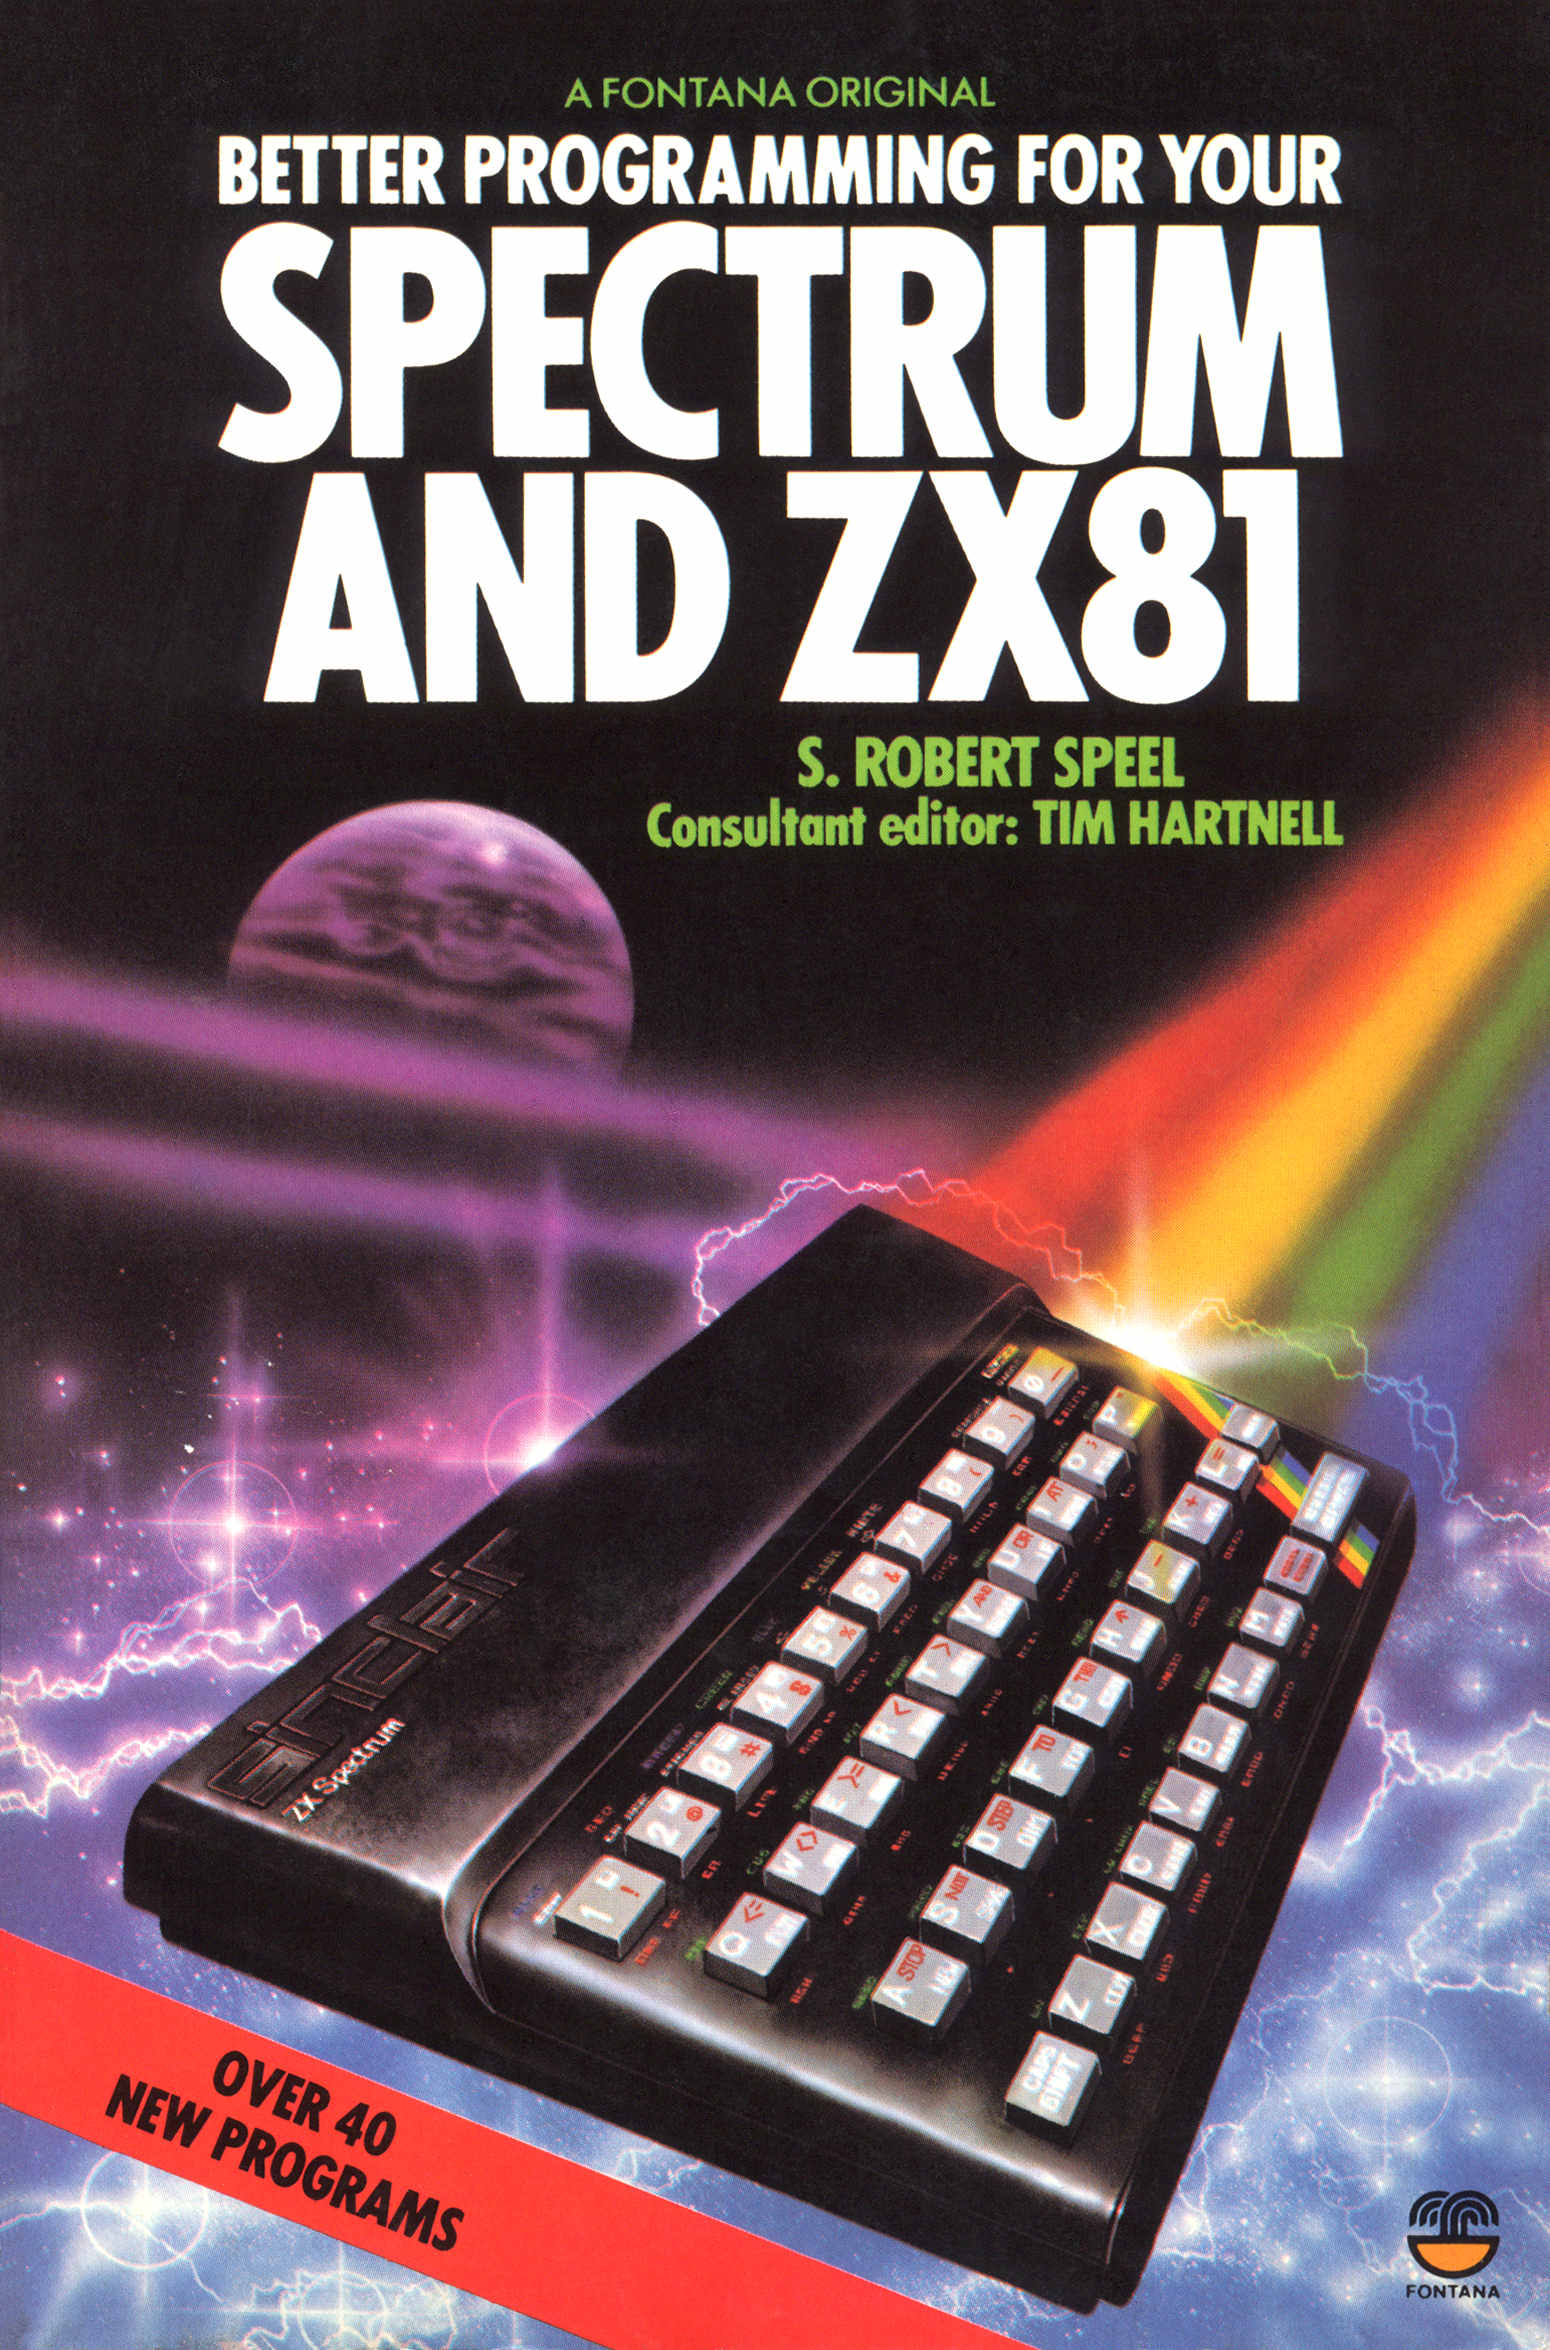 Better Programming for Your Spectrum and ZX81 image, screenshot or loading screen